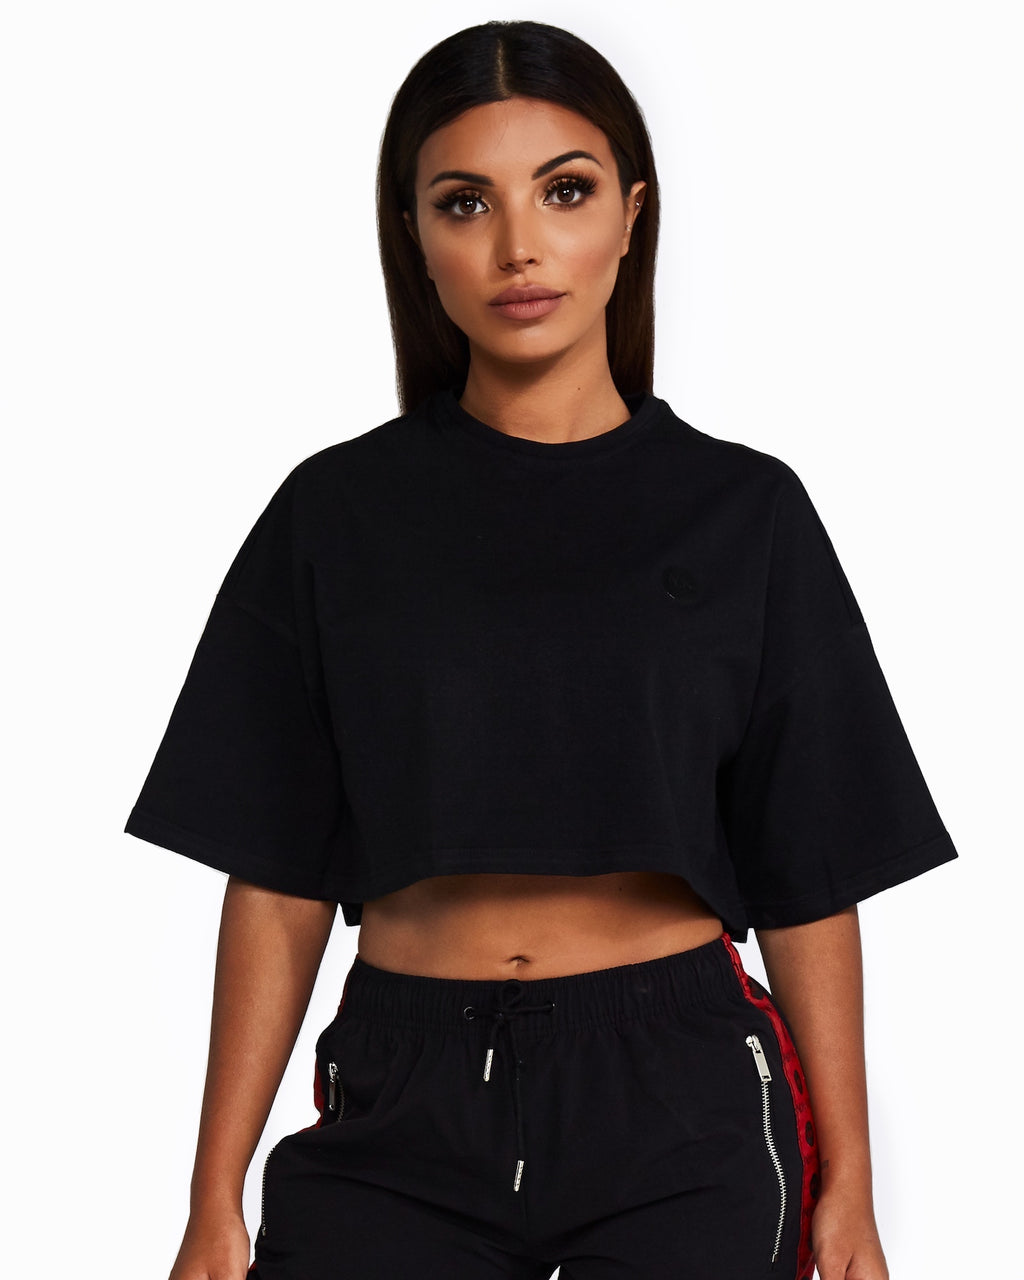 Nicky Kay Cropped Tee - Black